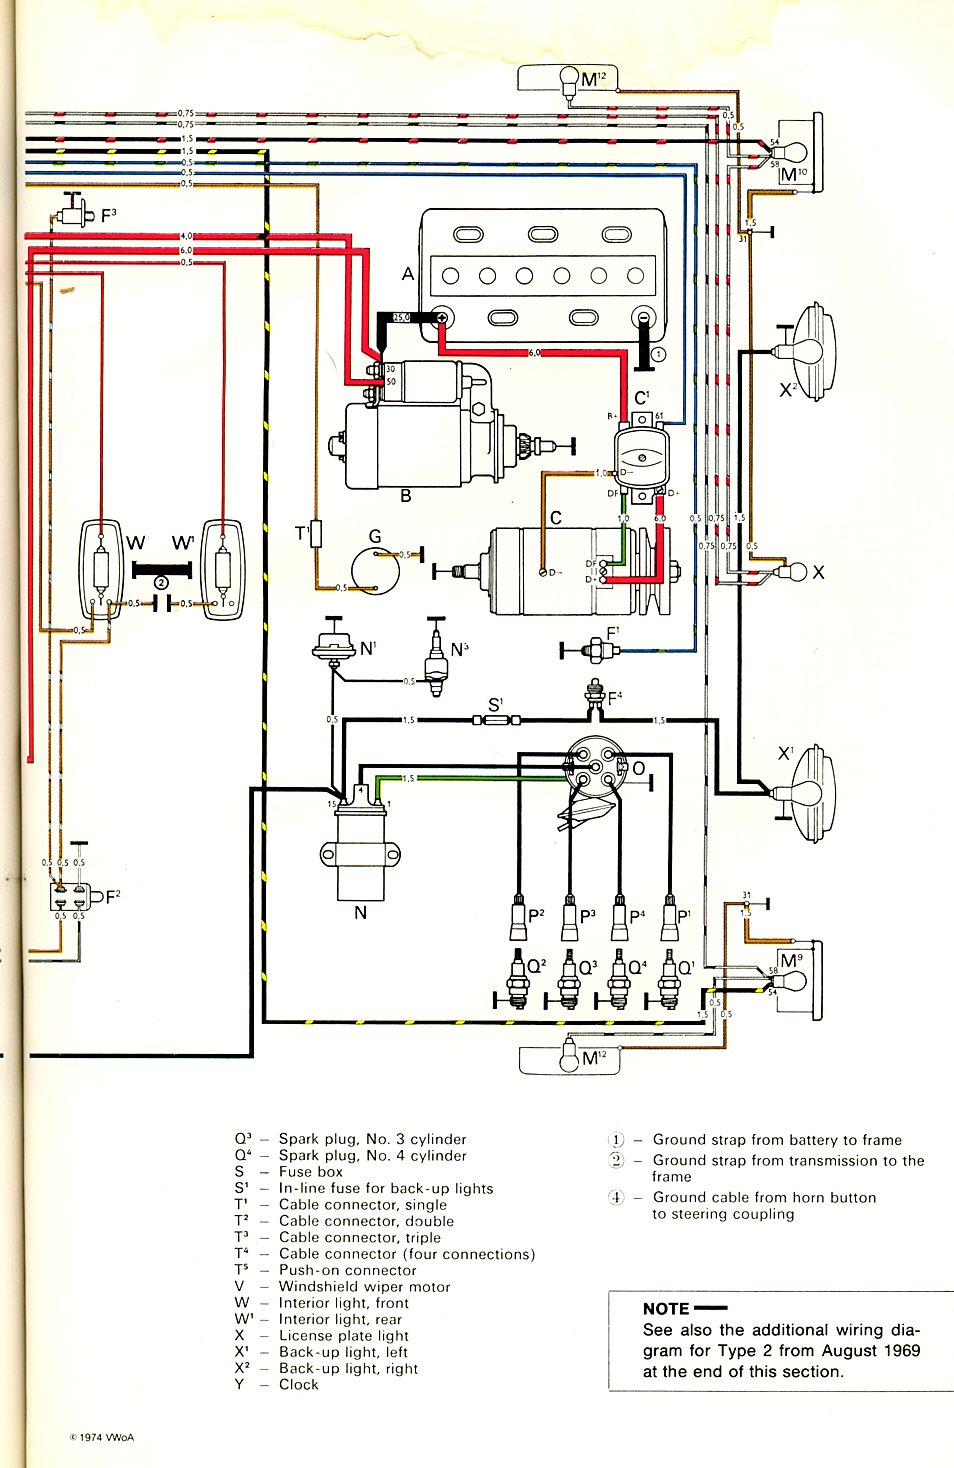 1974 Vw Super Beetle Wiper Motor Wiring Diagram Free 71 Fuse Block Source Rh 12 13 4 Logistra Net De 74 Box